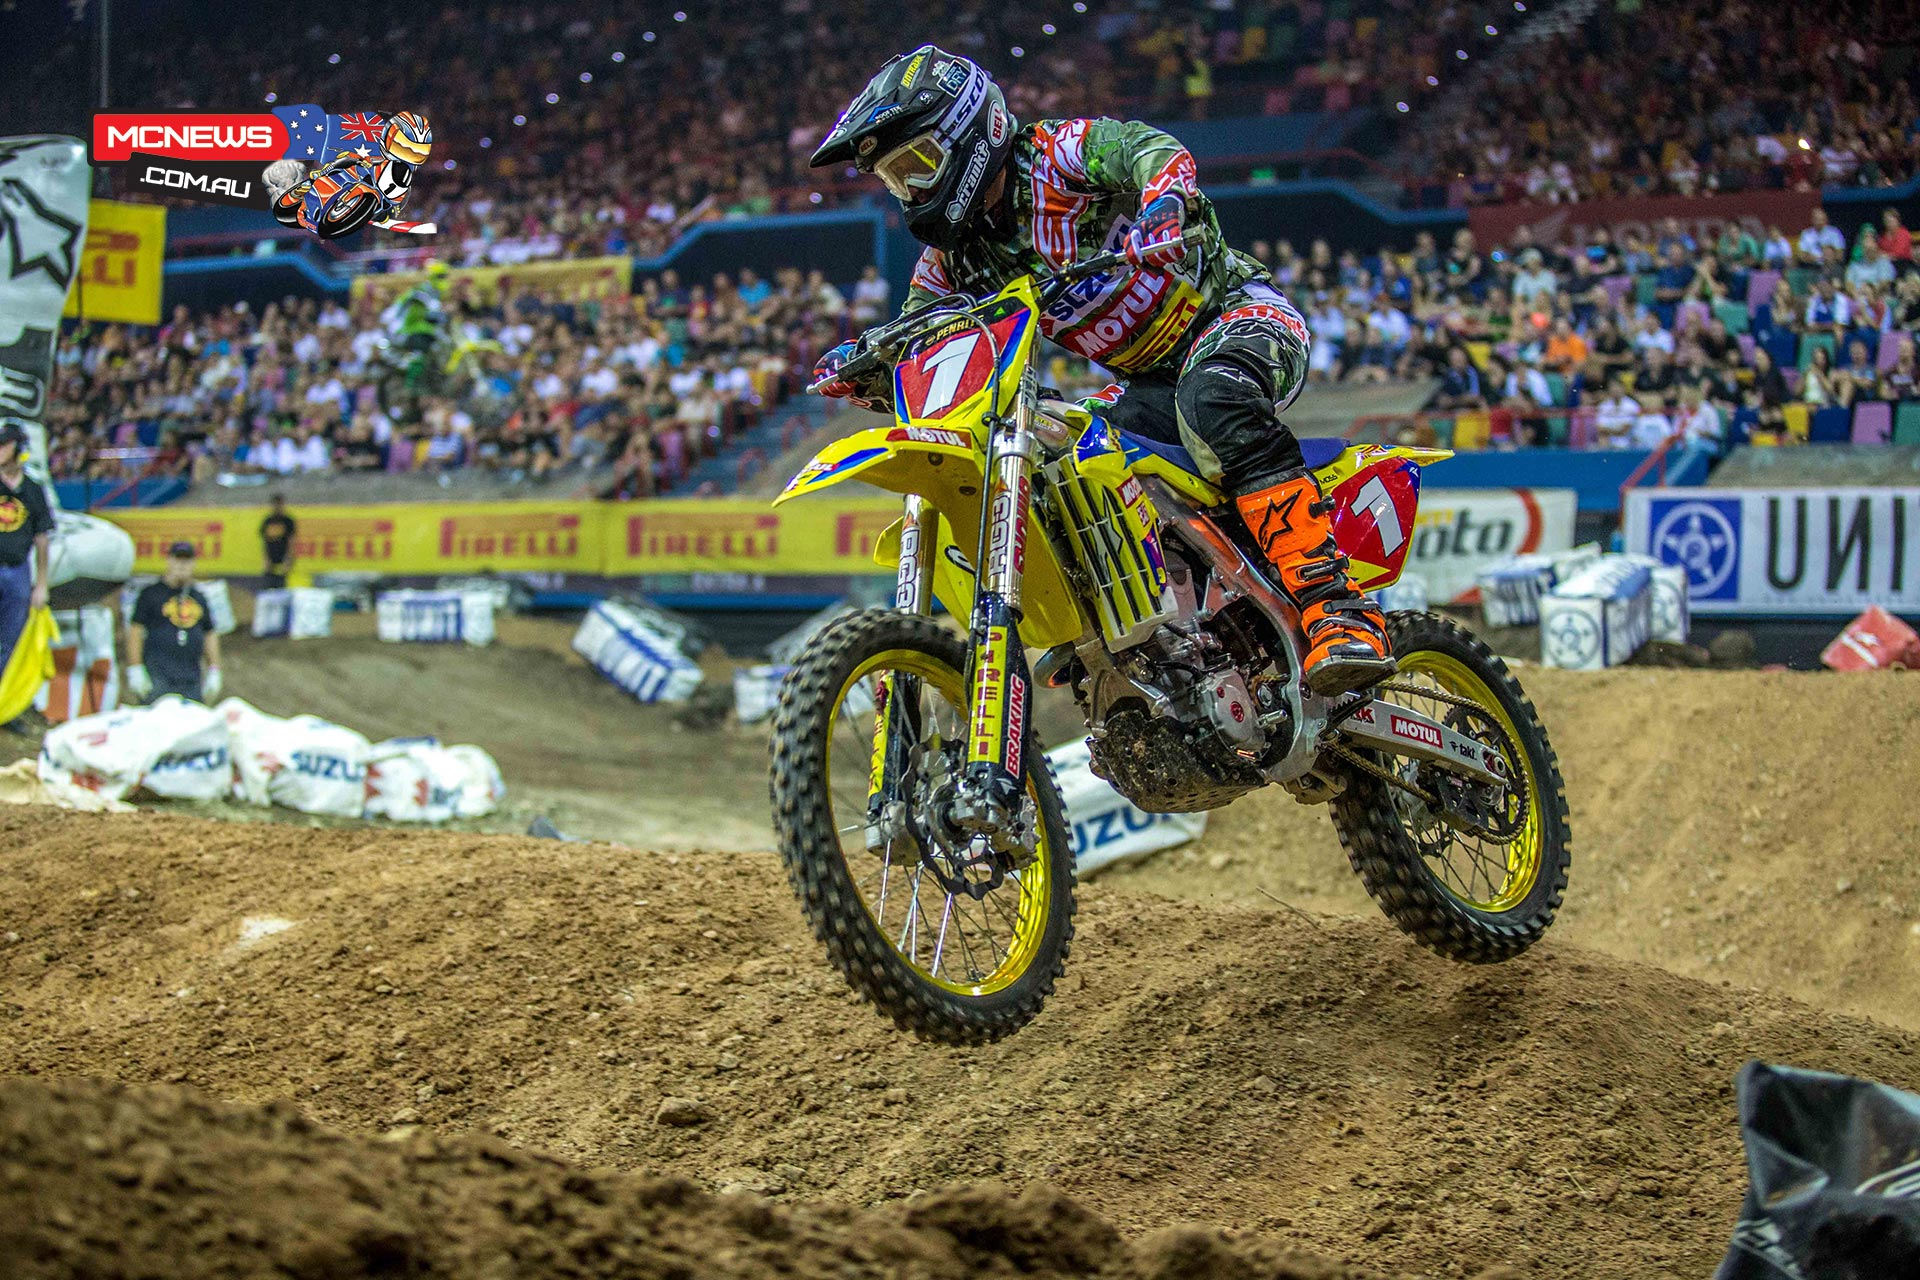 Matt Moss won all five rounds of the series, securing back-to-back supercross titles and his fourth consecutive Australian title.